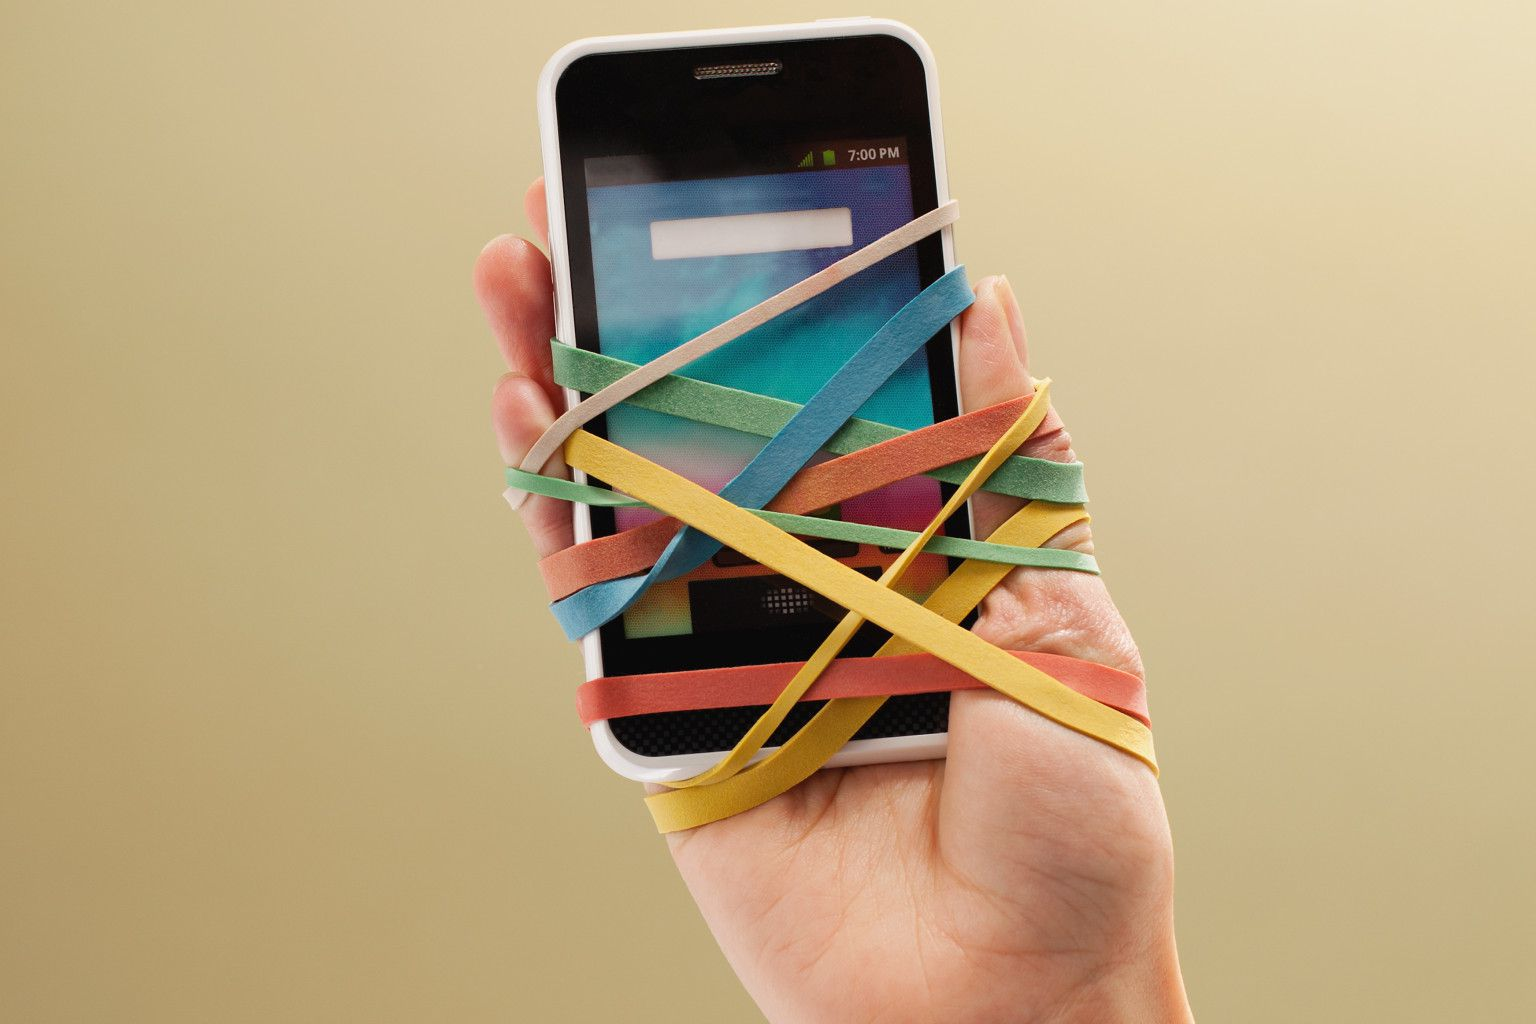 Smart phone atached to hand